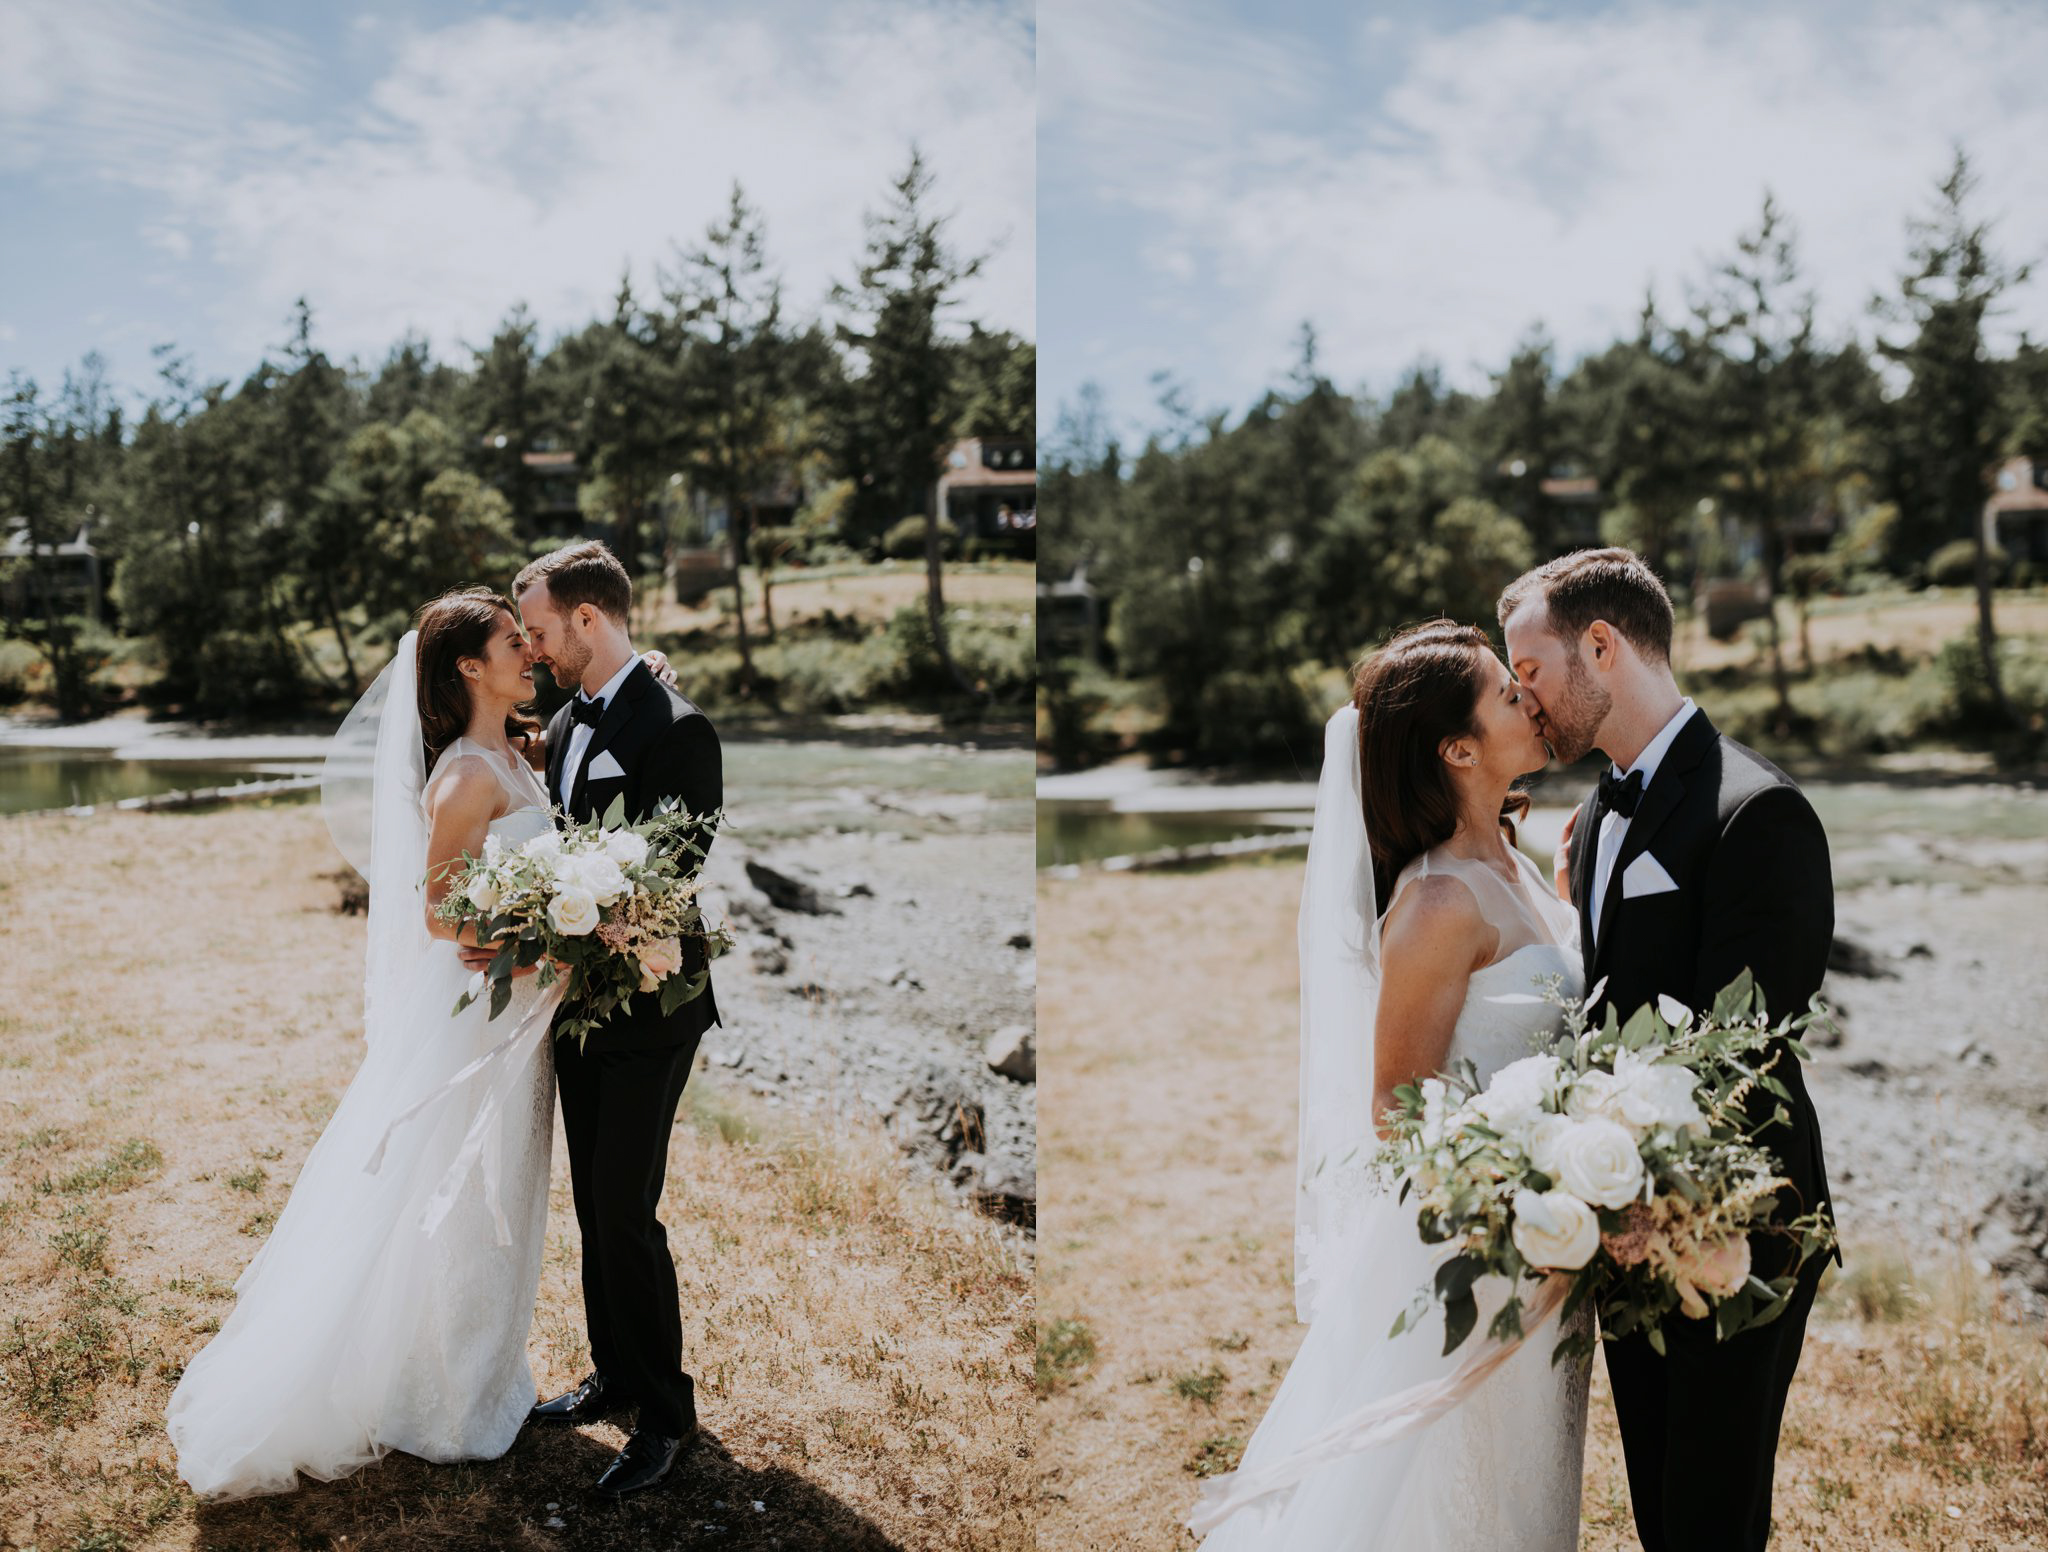 roche-harbor-resort-sand-juan-island-wedding-seattle-wedding-photograher-caitlyn-nikula-67.jpg